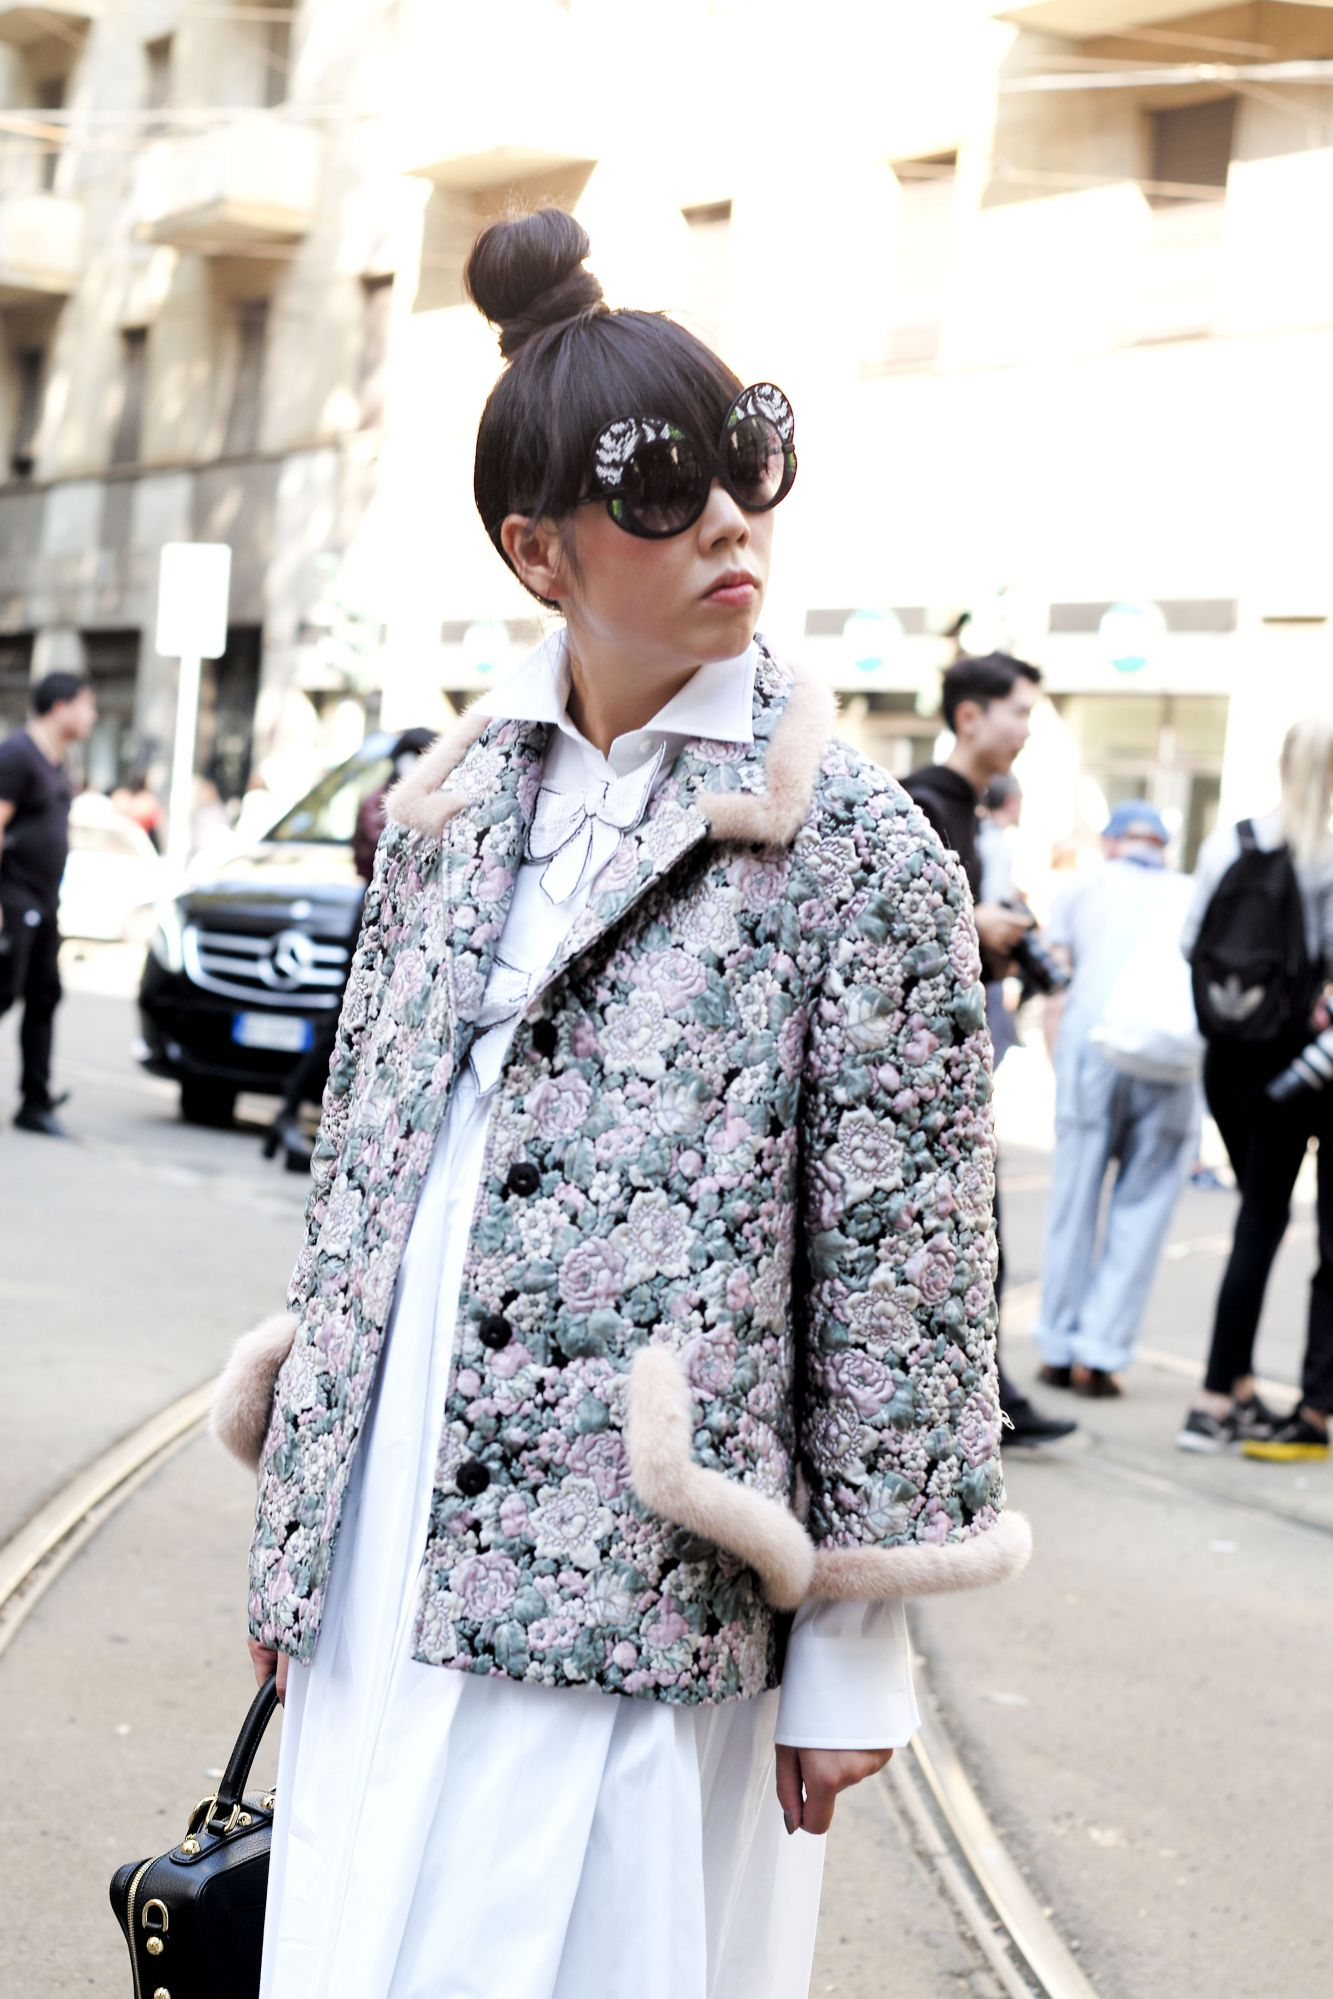 5 Minutes With... Susie Lau Of Style Bubble